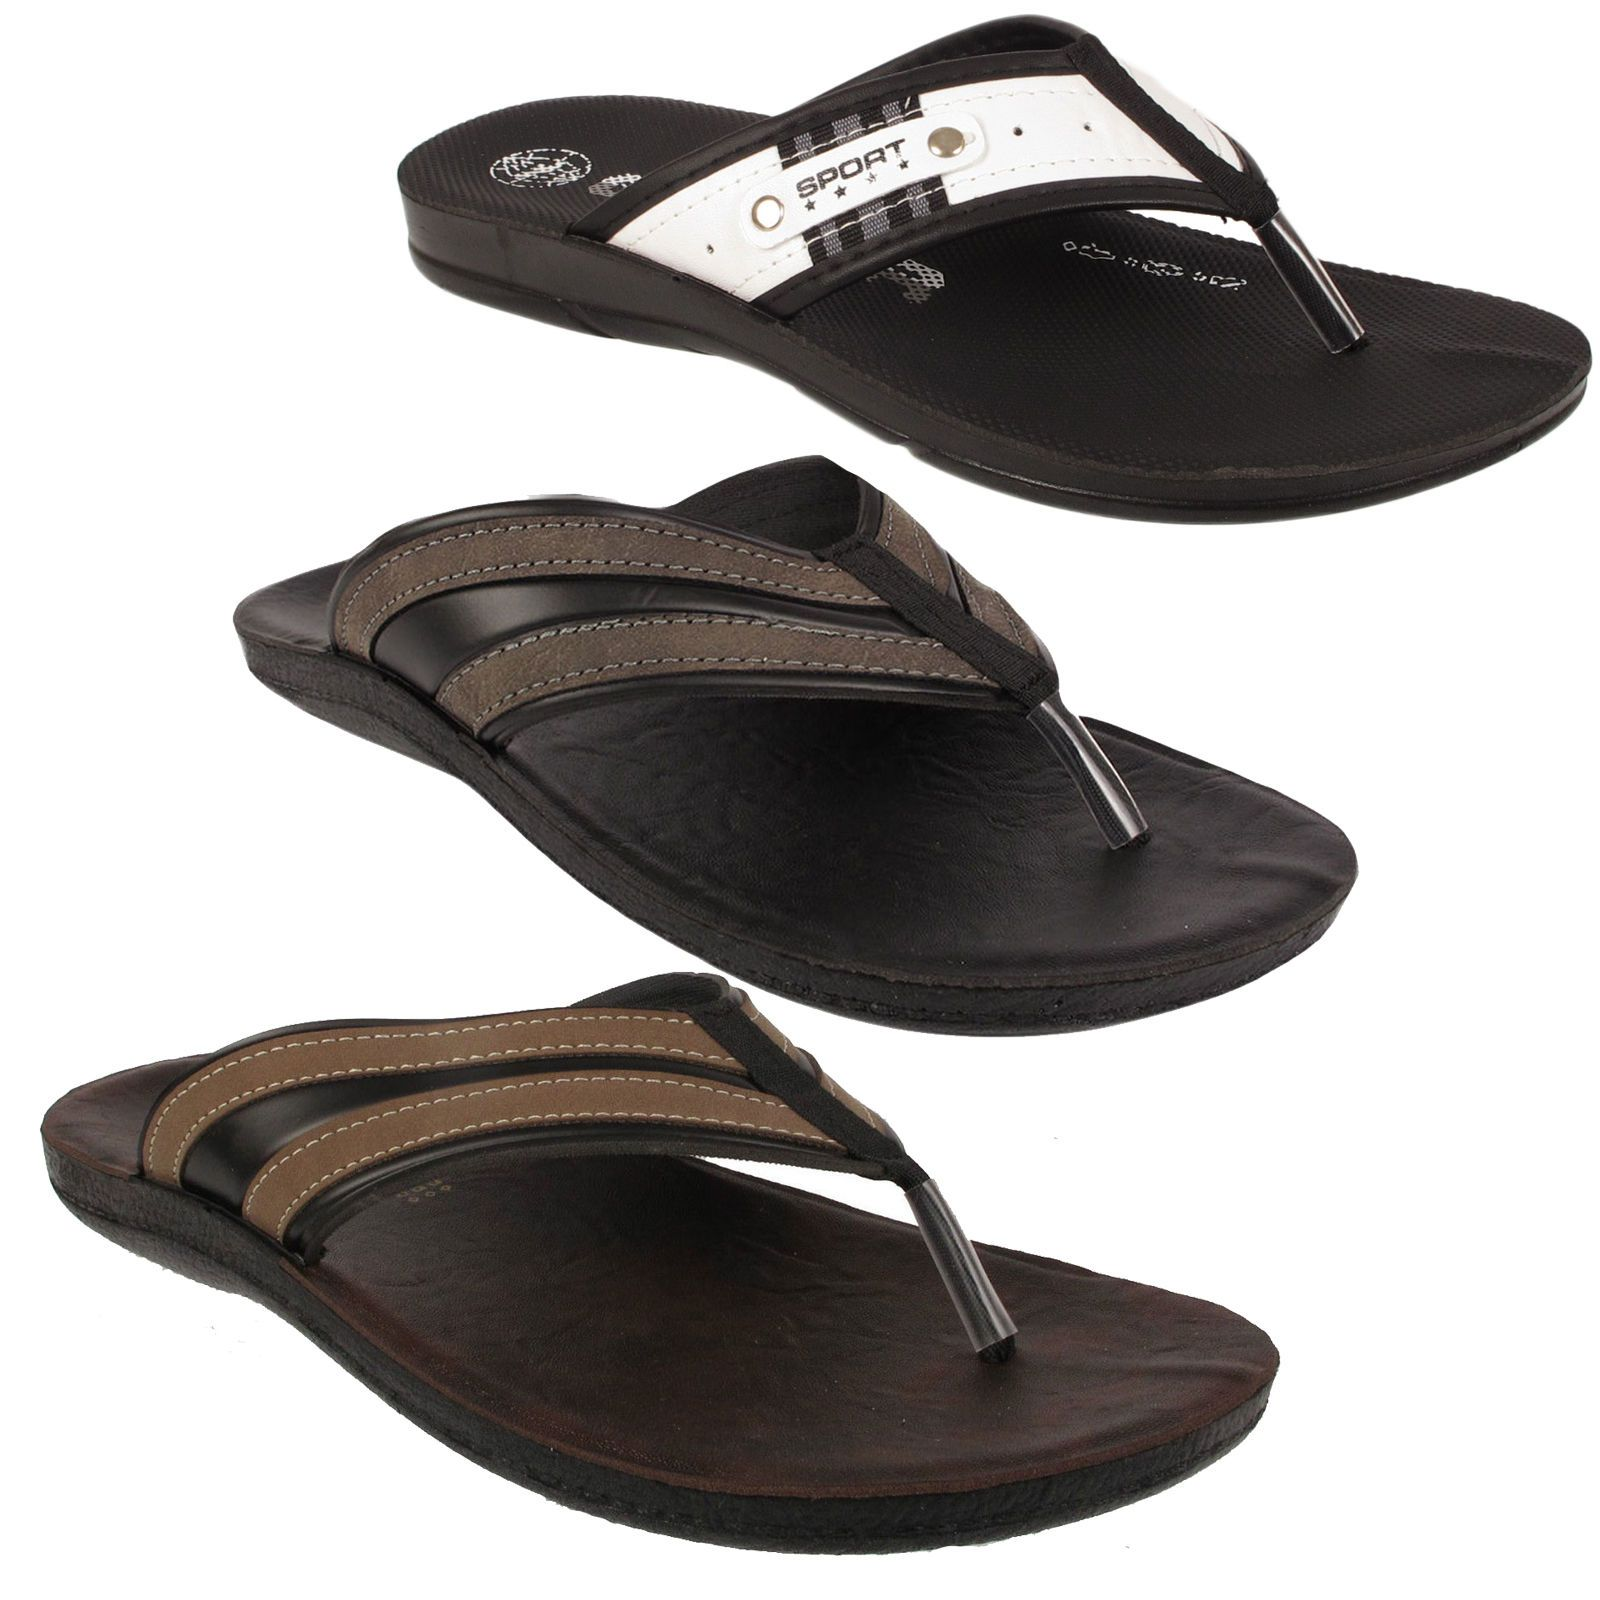 Minimalist sandals men Zeppy.io